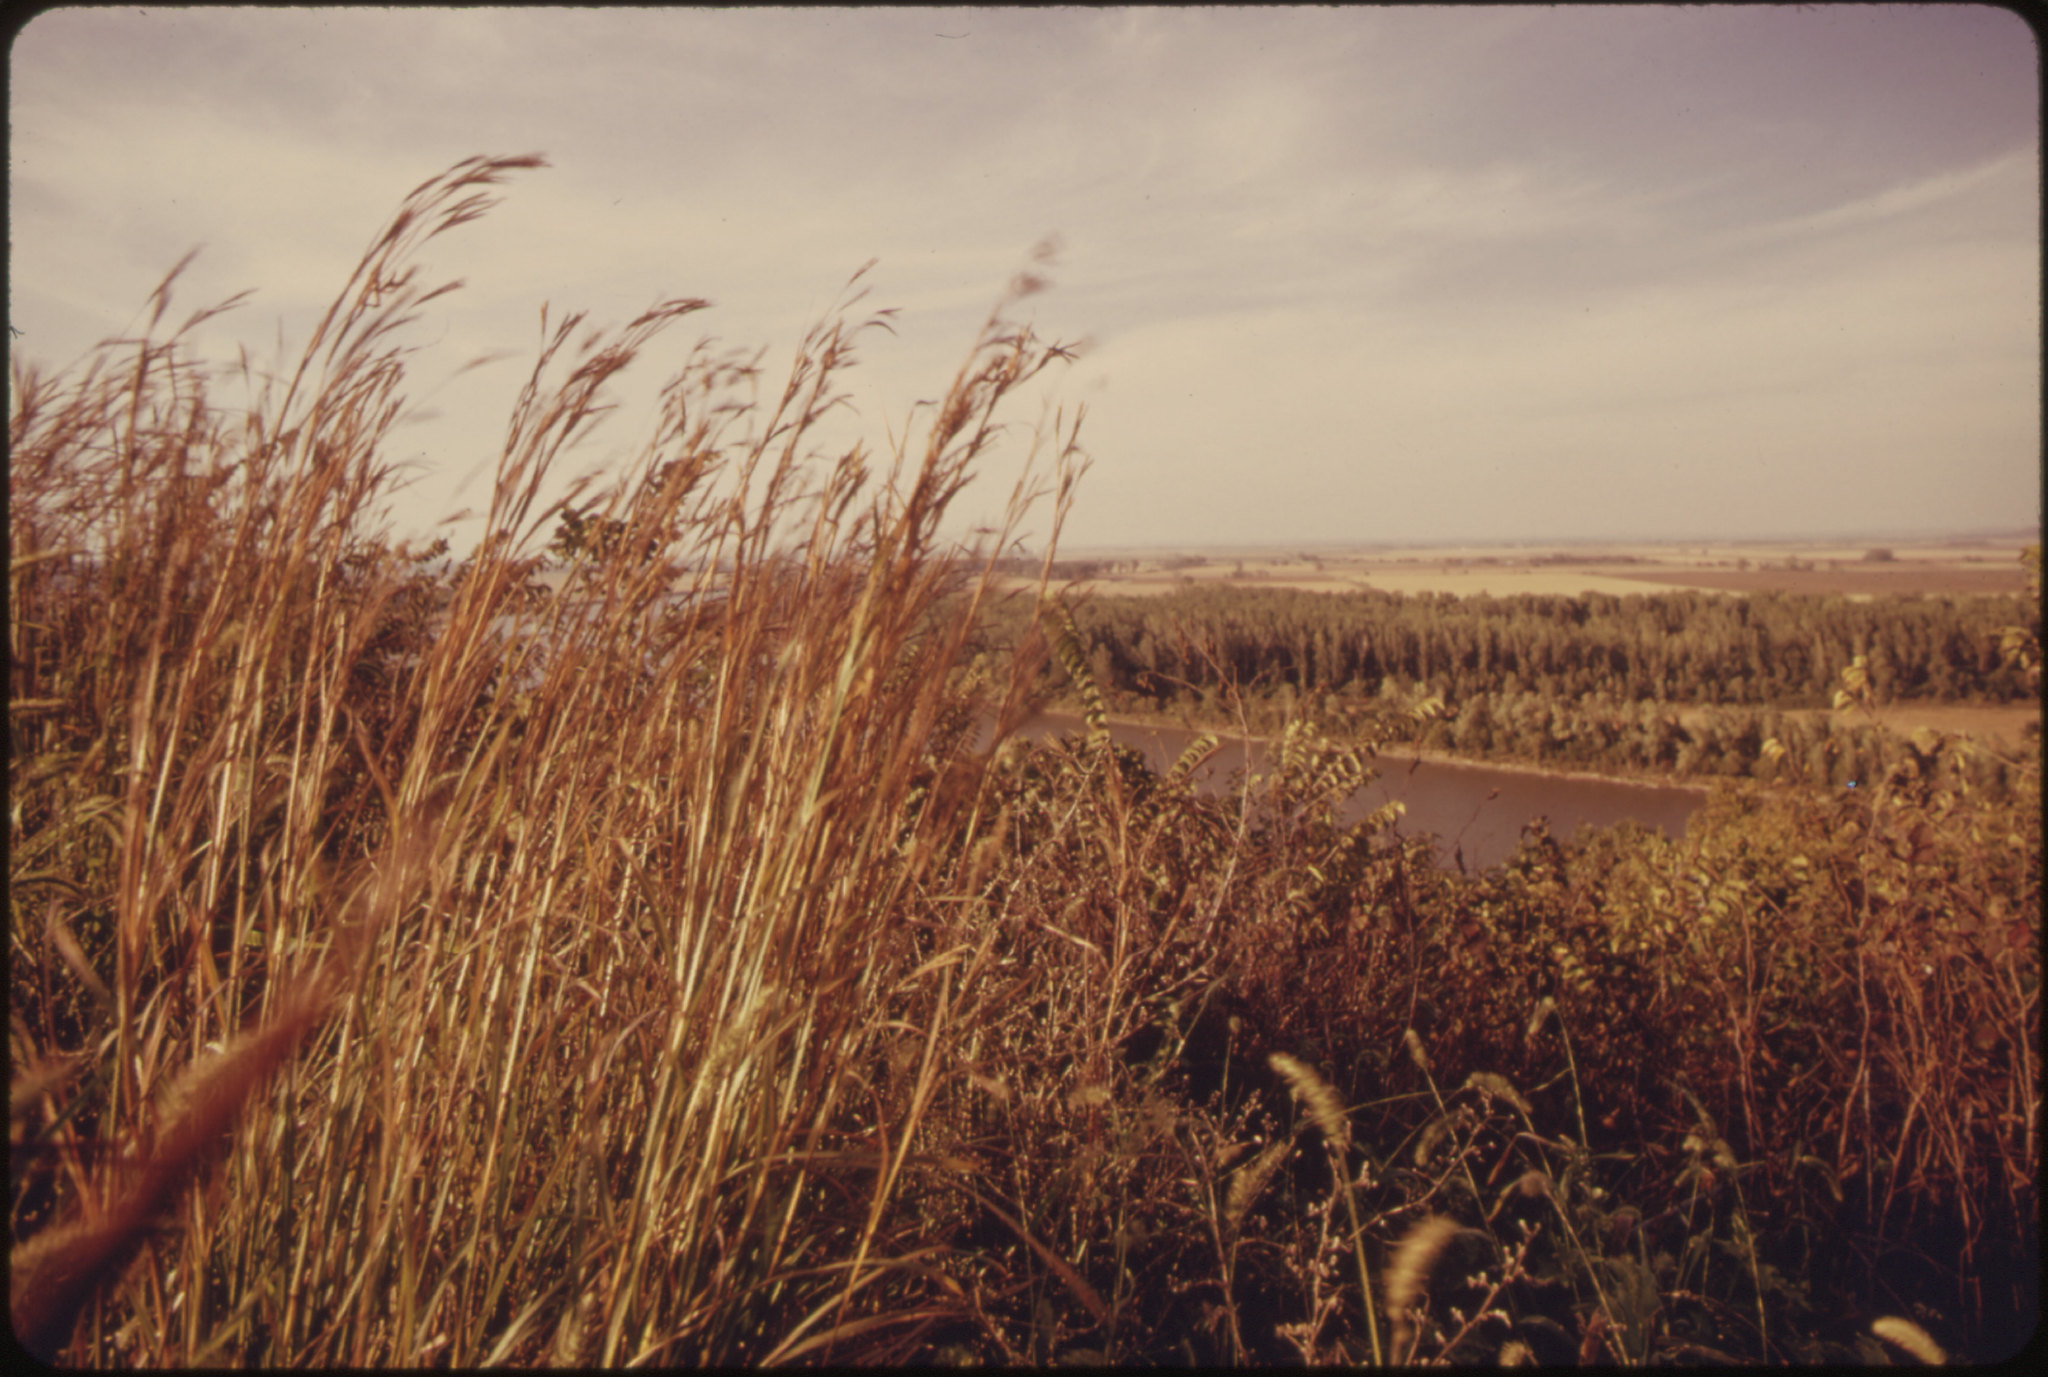 a film photograph of a landscape, which appears to have been taken at dusk--the photo has a gold hue, close to the camera to the left of the image are tall, brown grasses, the background of the photo is a lake and pines beyond